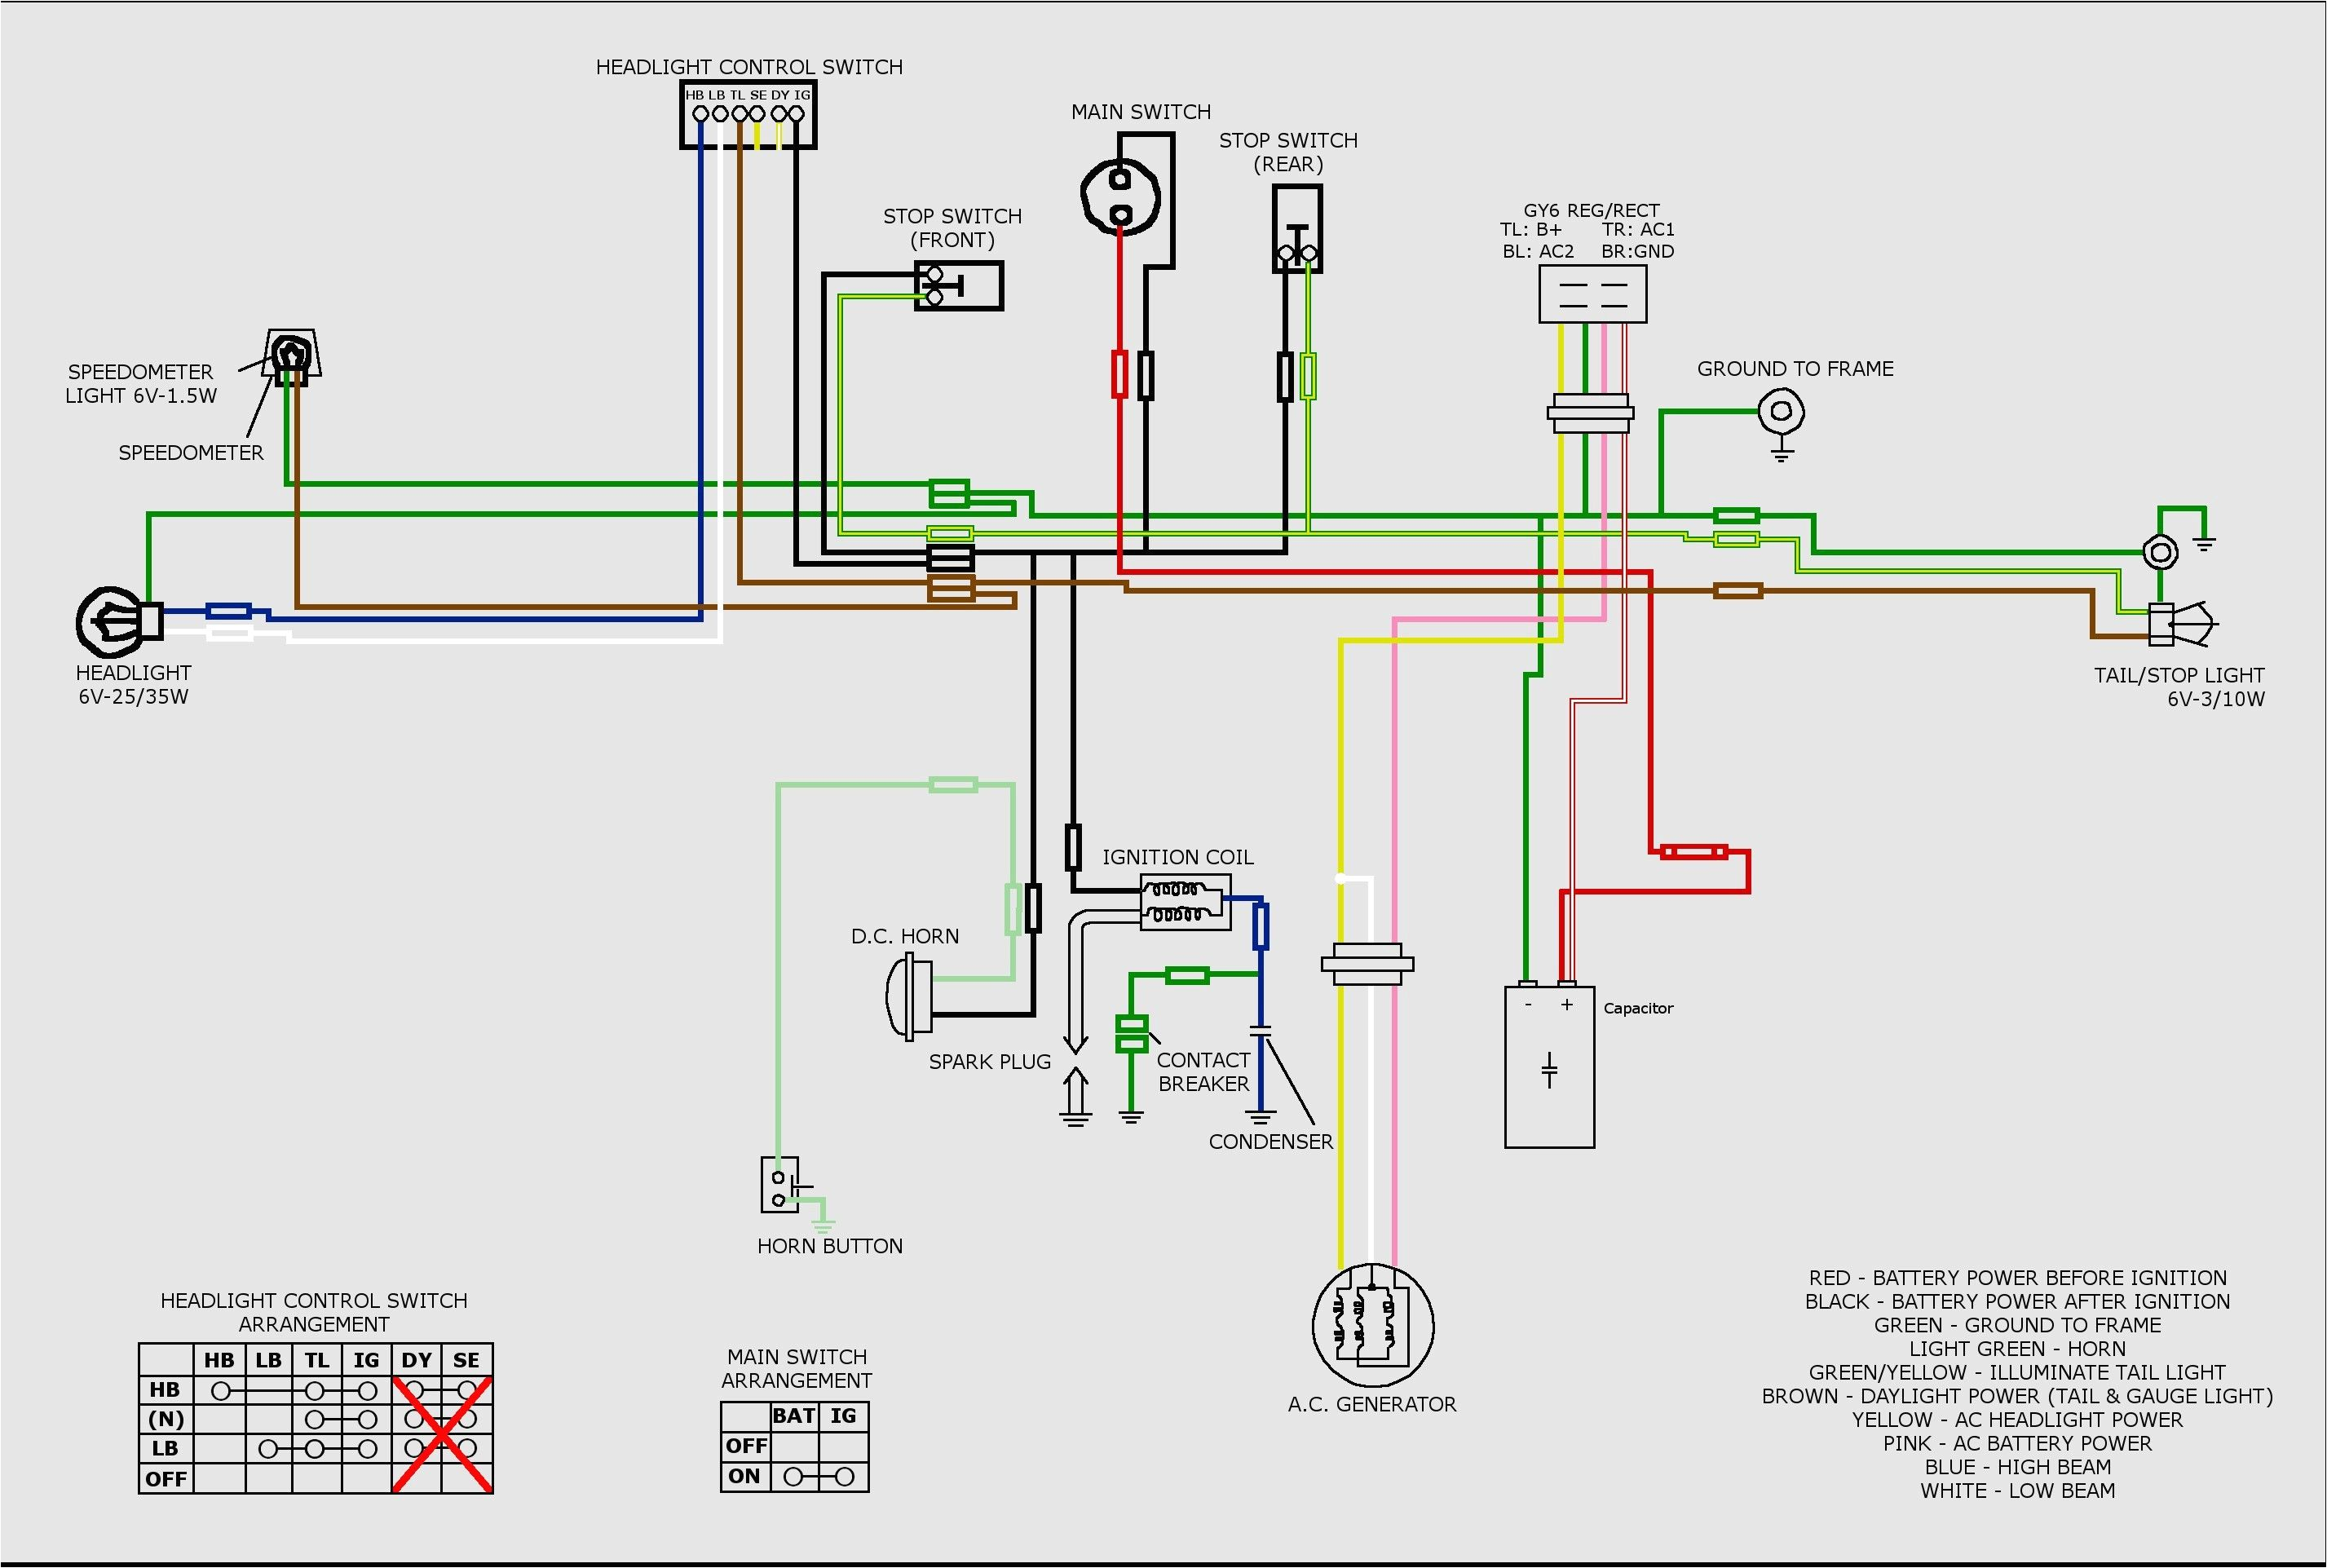 gy6 wiring harness diagram wiring diagram name gy6 wiring harness diagram